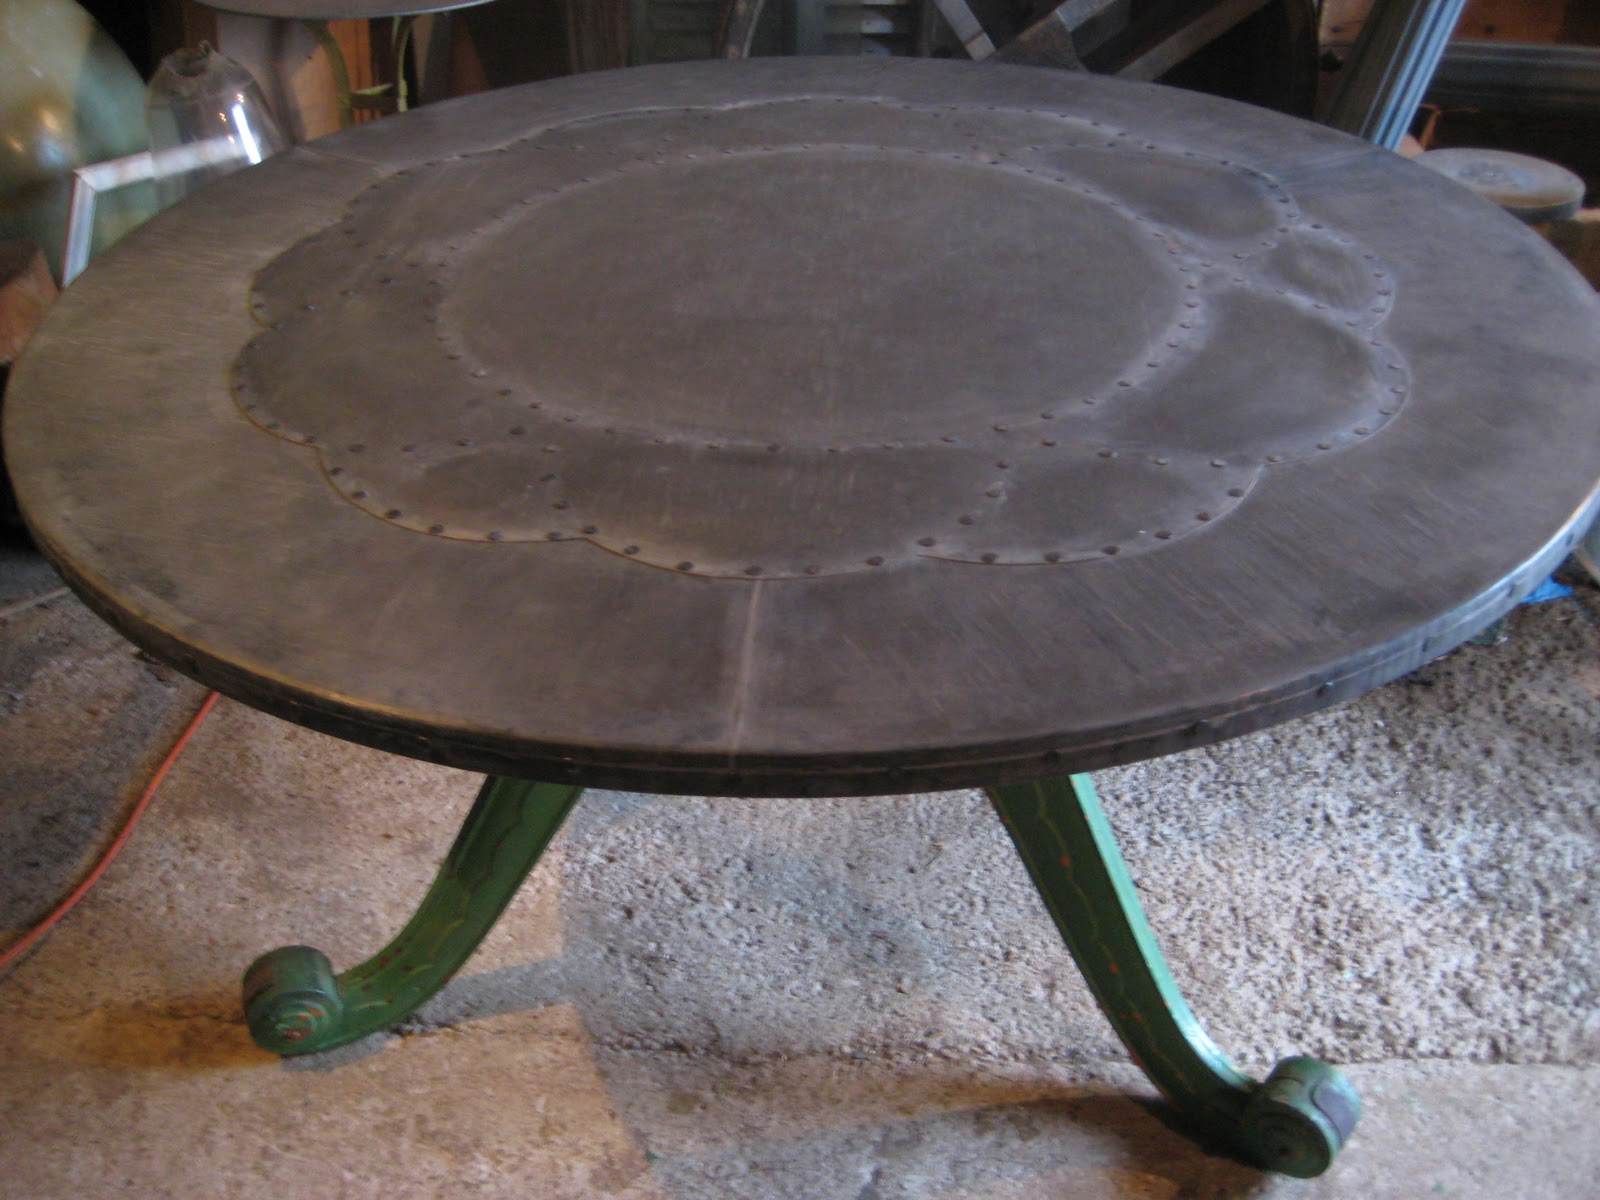 This Base For This Table Was Made From Three Old Cast Iron Elements Which I  Adapted With The Manufacture Of A Central U0027hubu0027. The Top Is Made In Three  ...